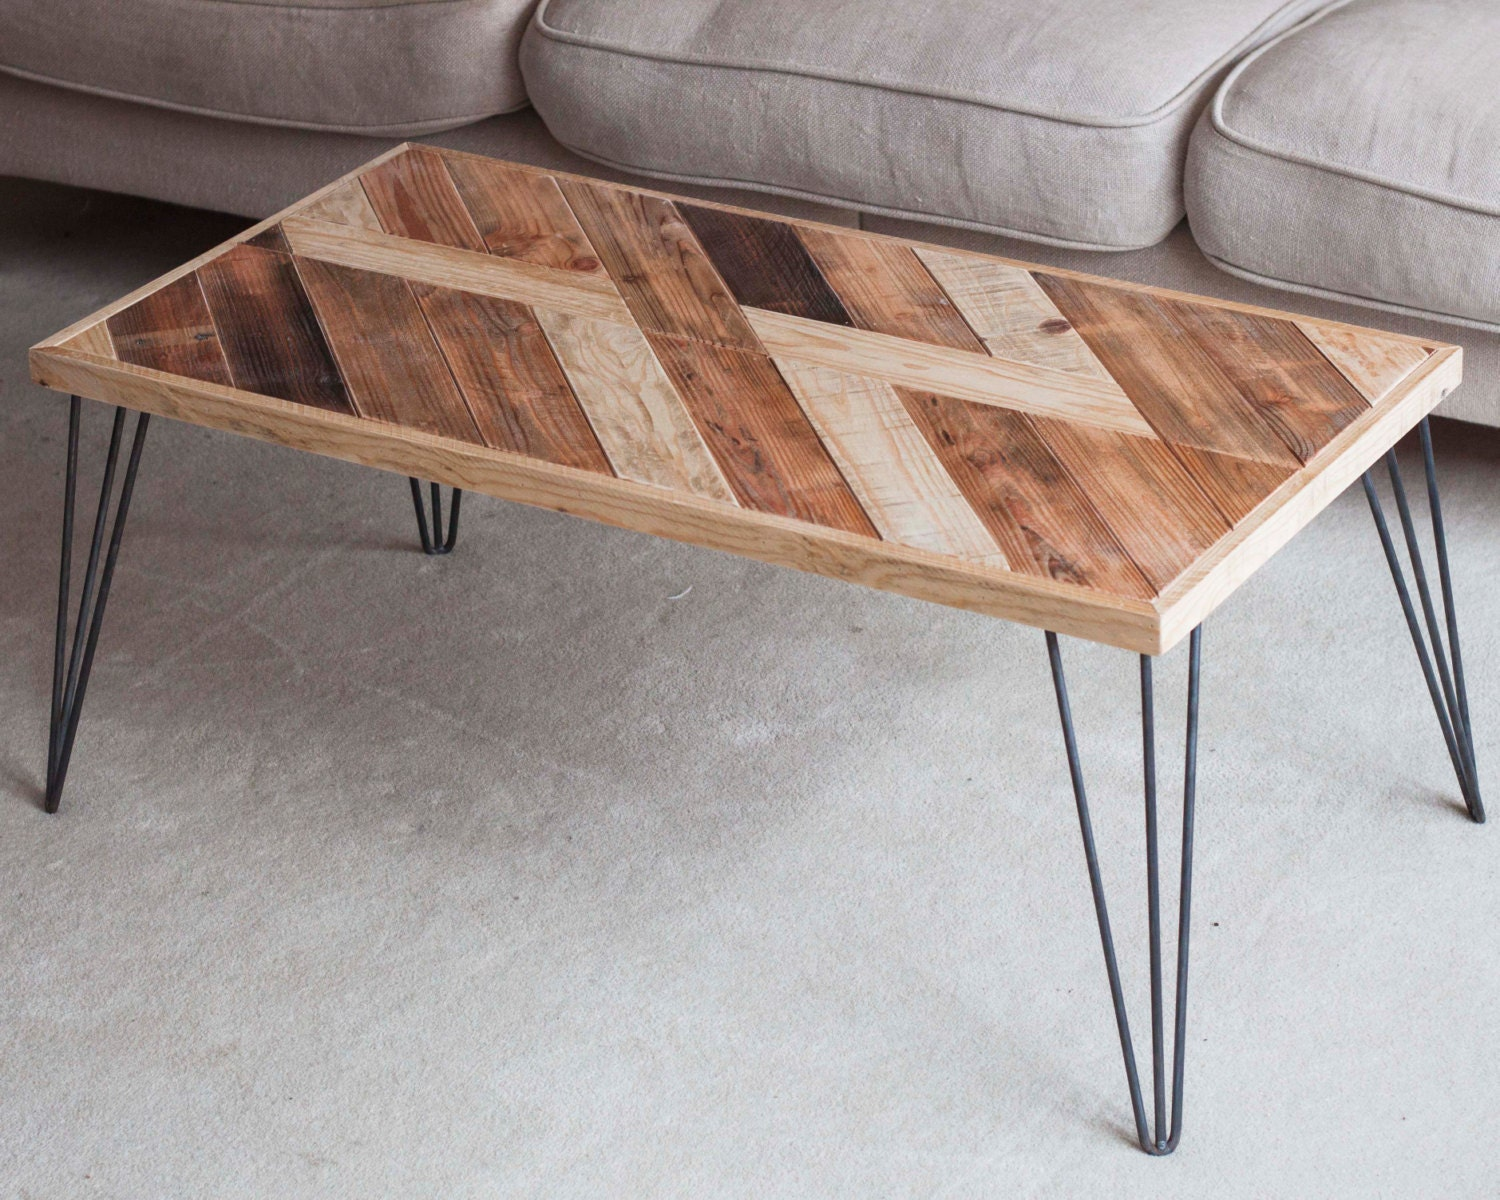 Wooden Coffee Table Hairpin Legs Table